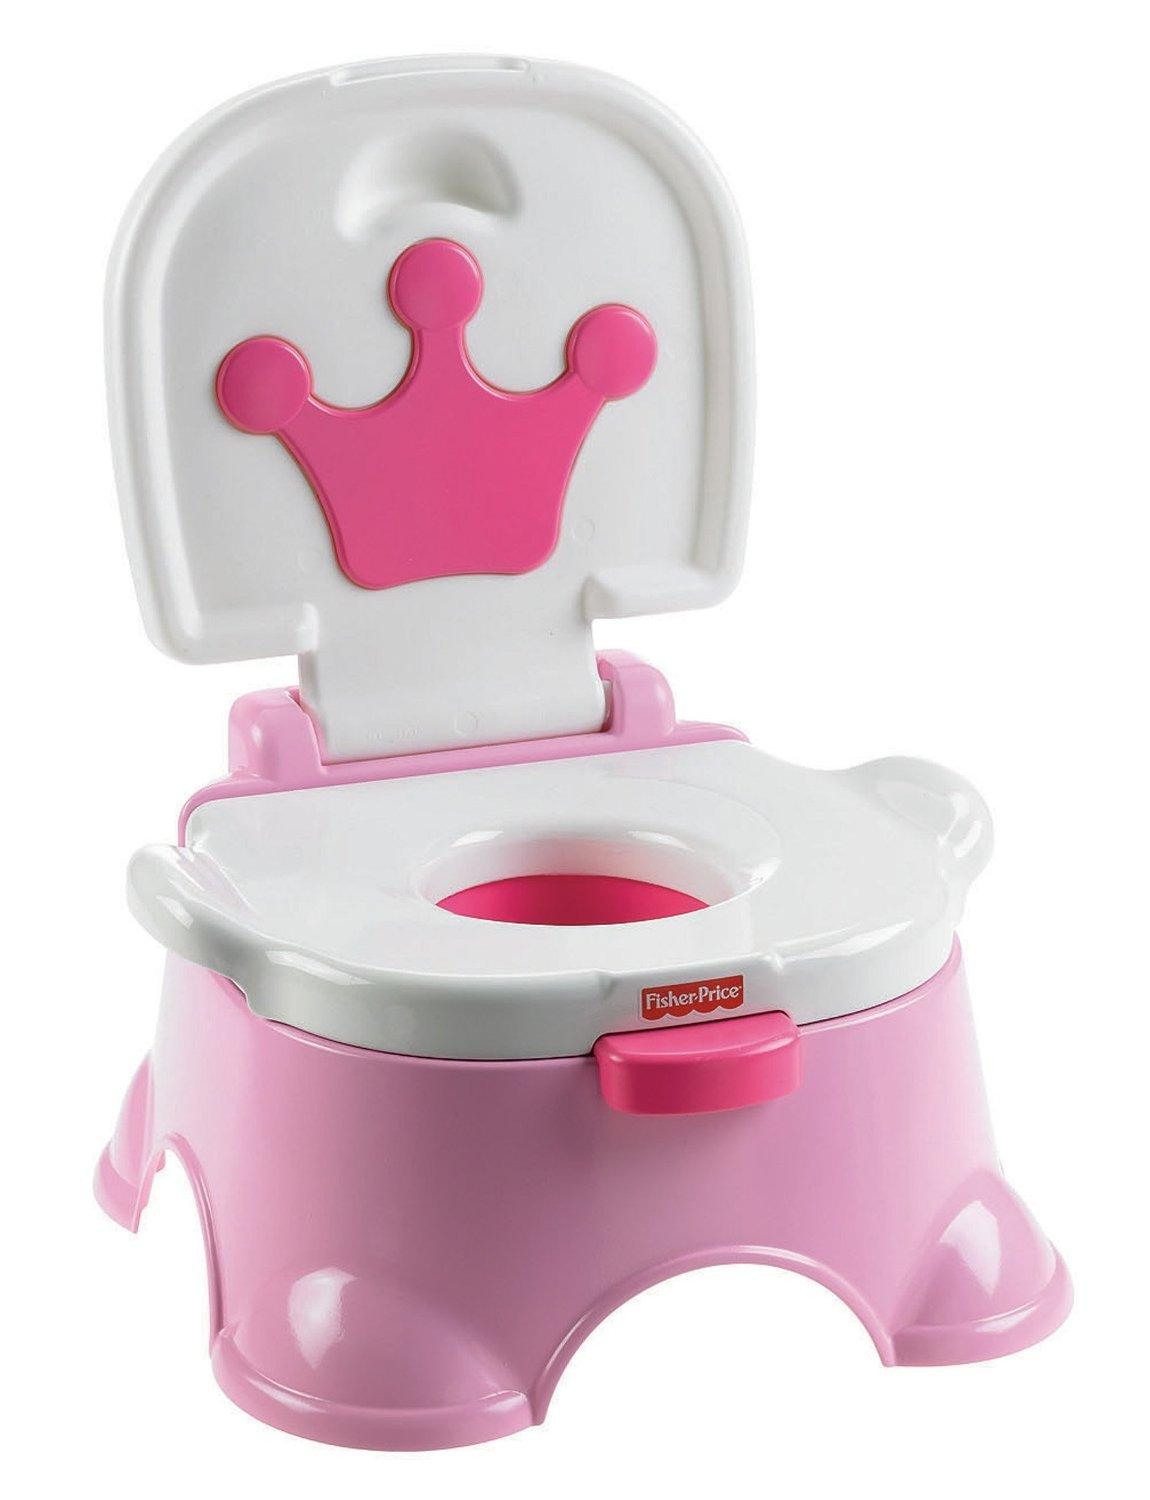 Fisher price toilet training potty liners